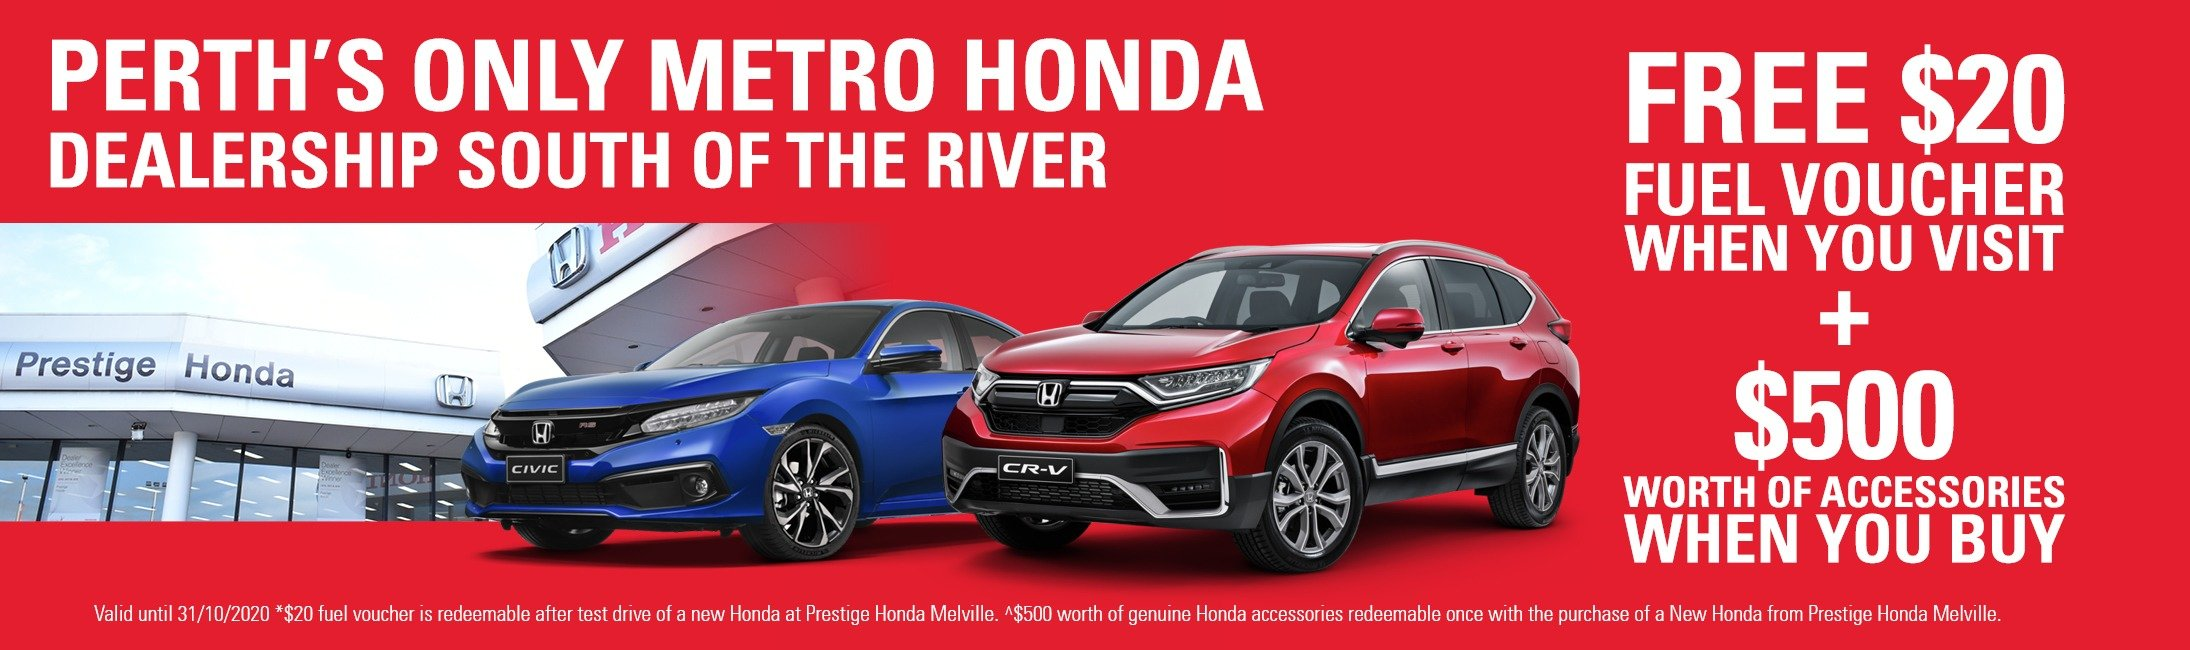 Perth's only Honda dealership south of the river.